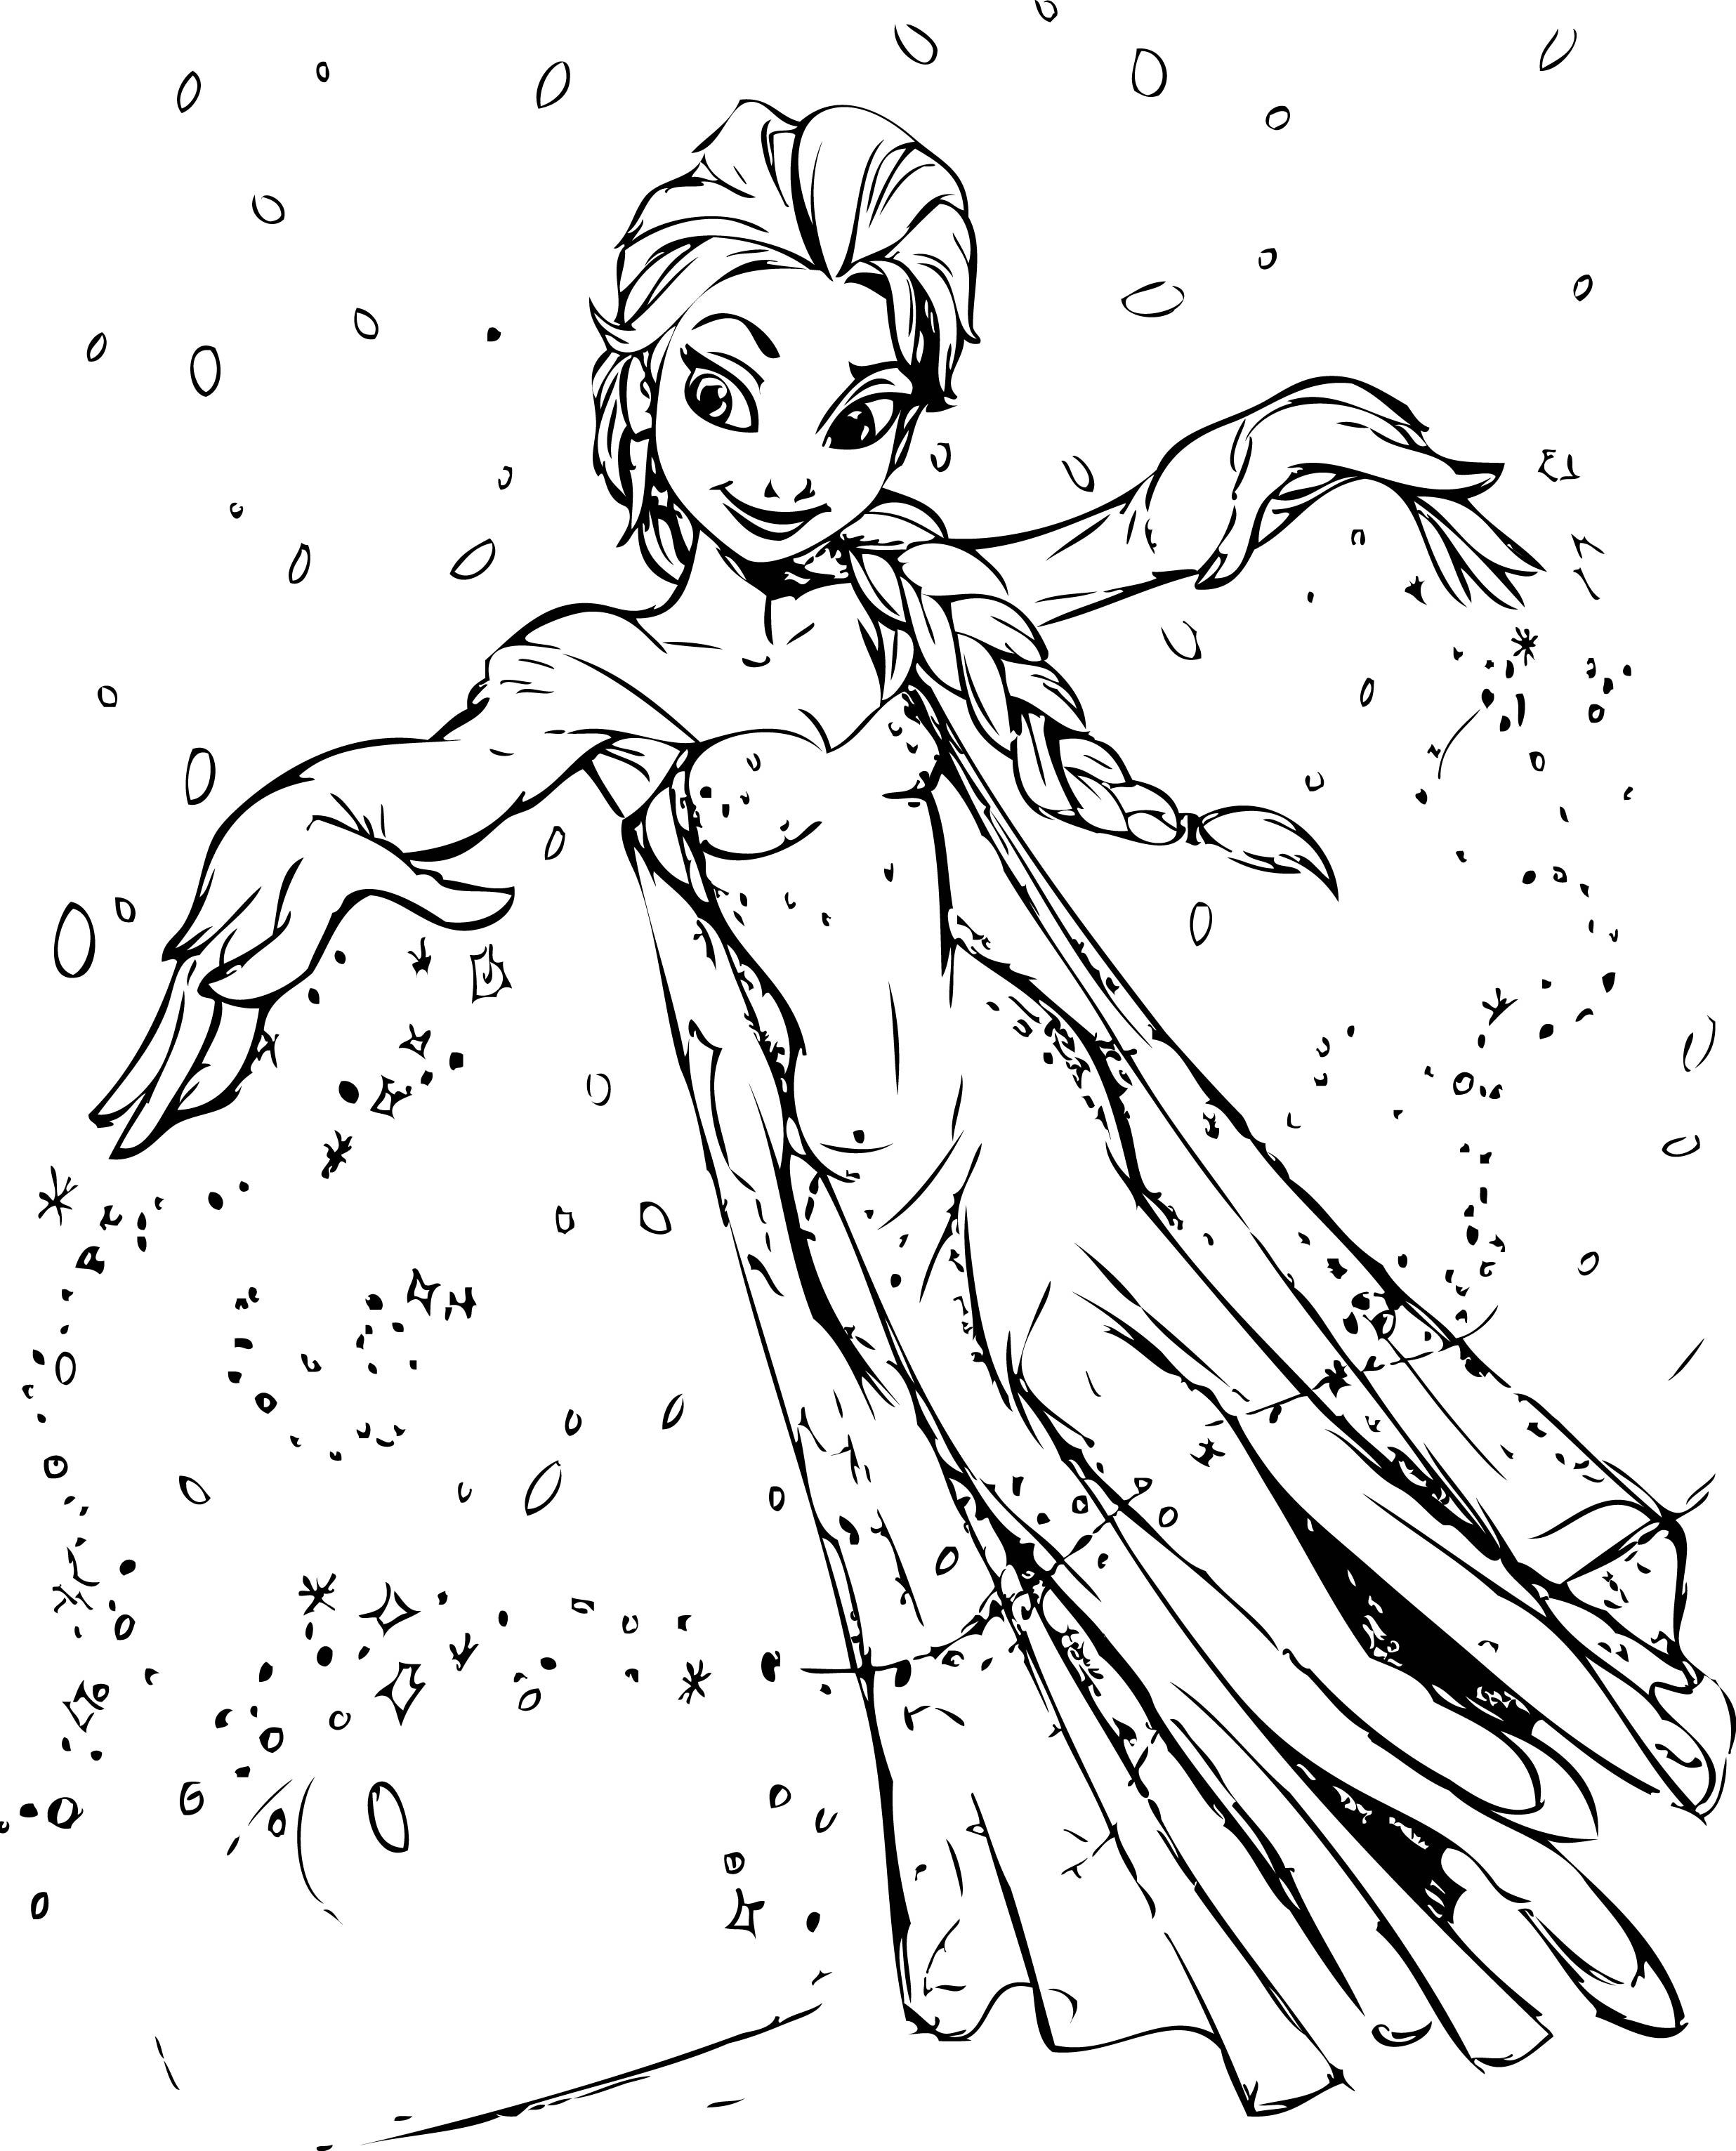 my elsa coloring page - Coloring Pages Elsa